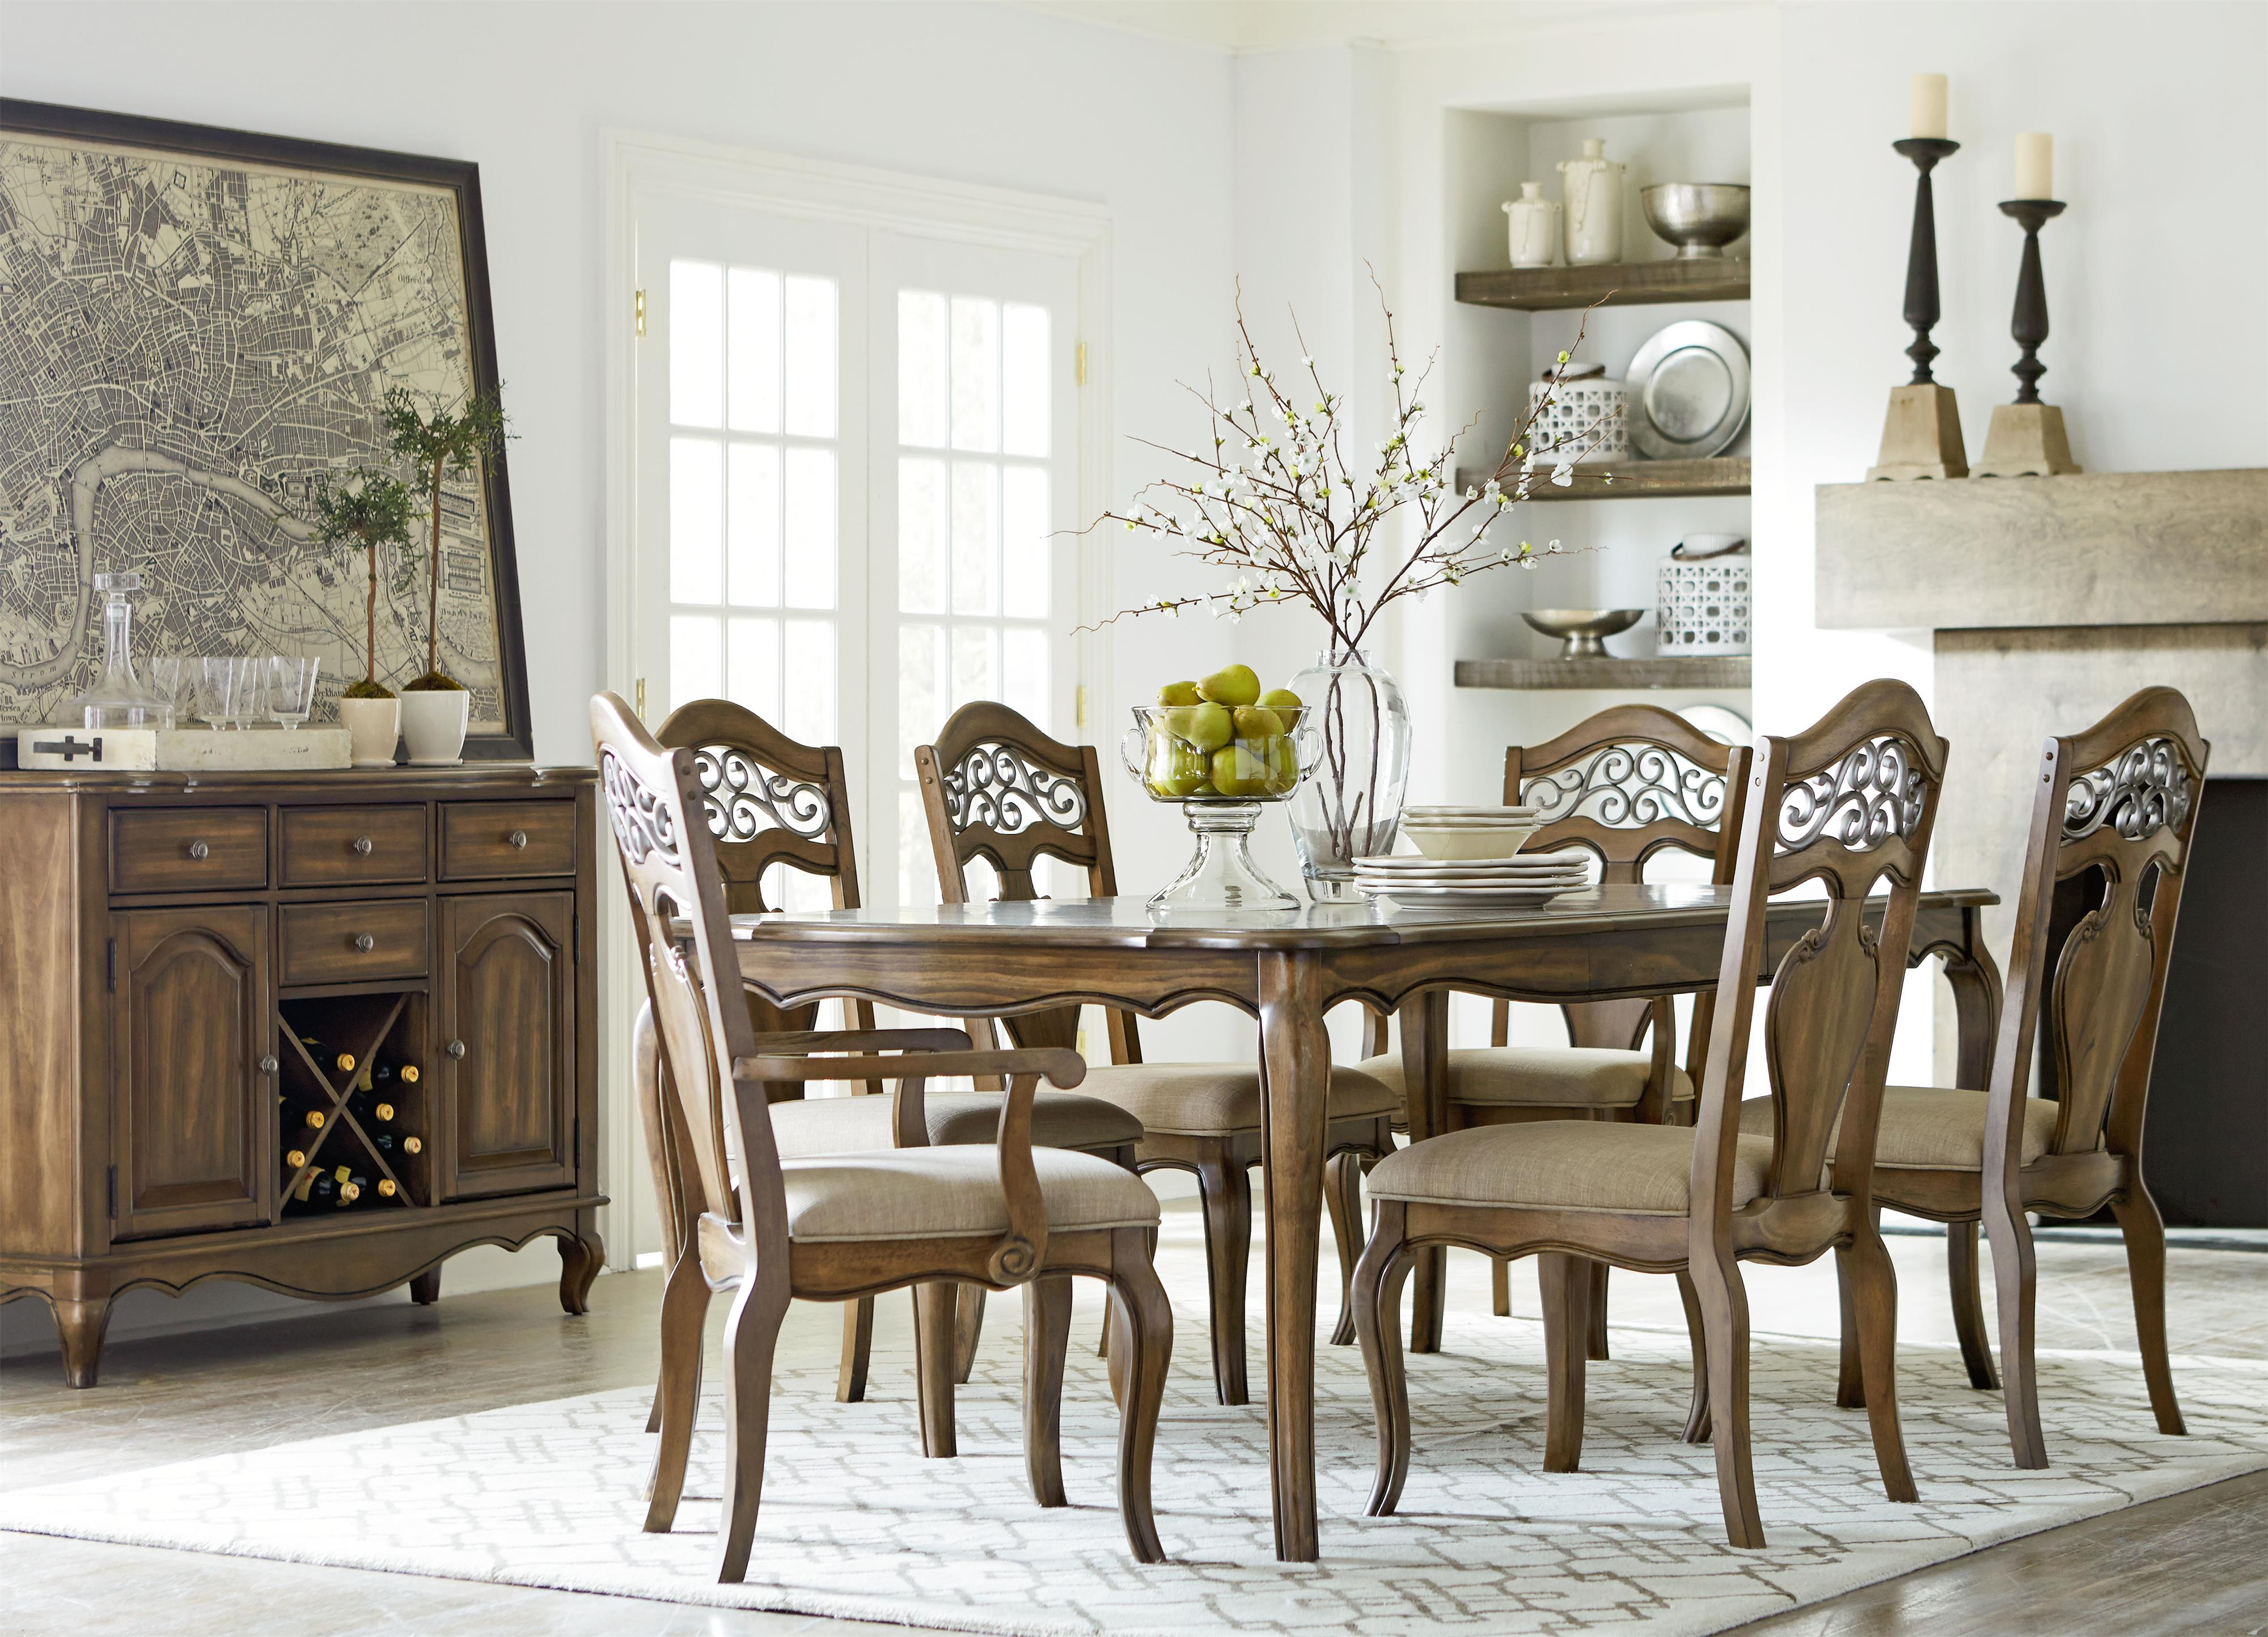 Standard Furniture Monterey Formal Dining Room Group - Item Number: 1436 Dining Room Group 1